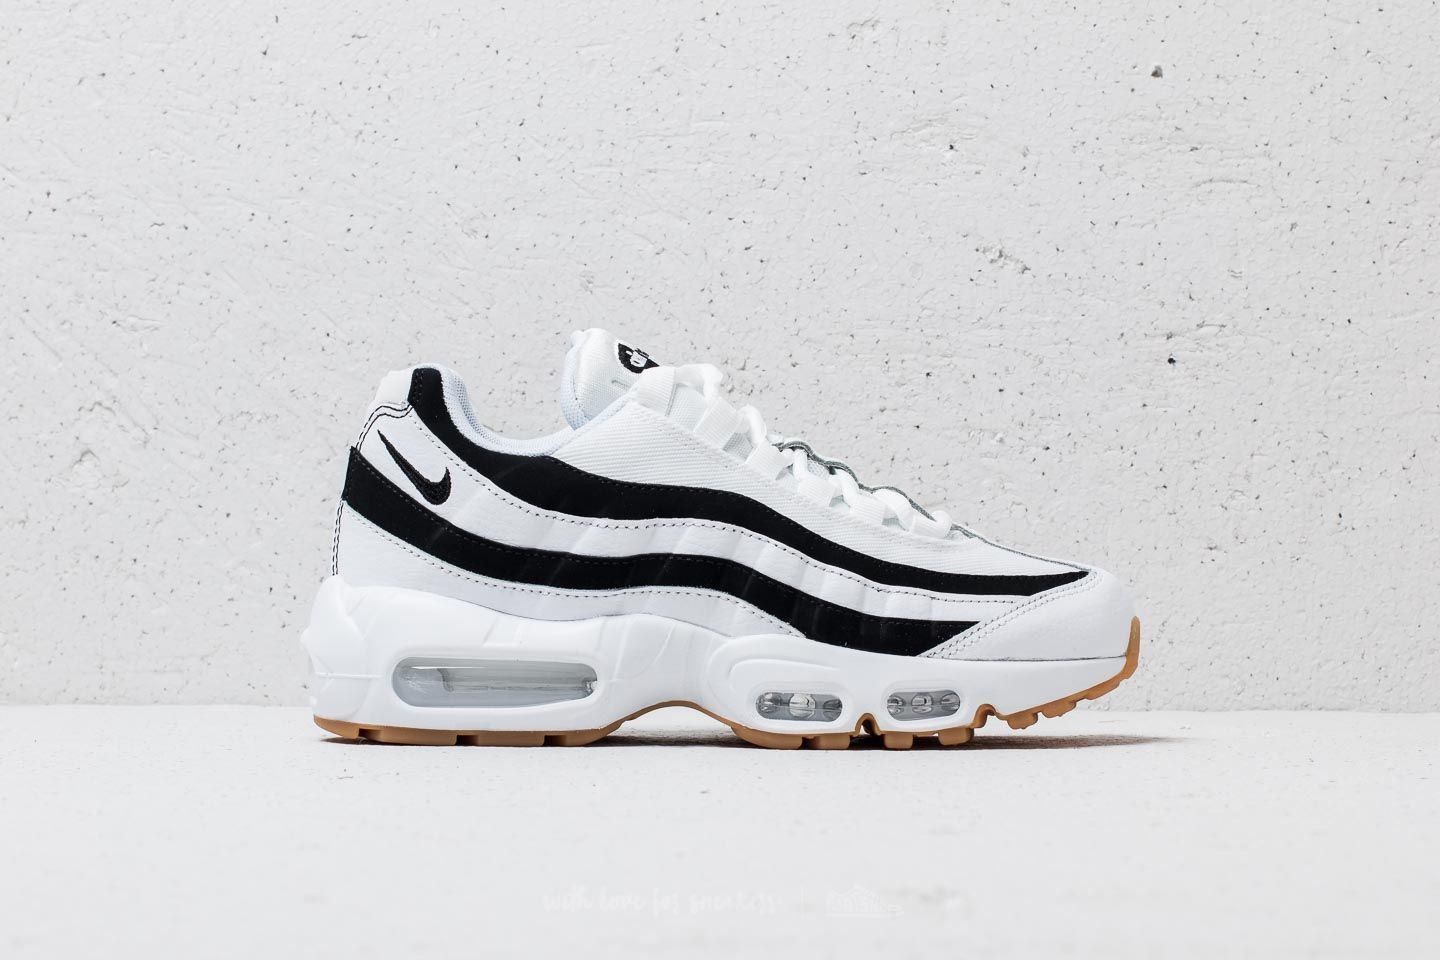 Nike Wmns Air Max 95 White  Black-Gum Light Brown at a great price 93acc32776